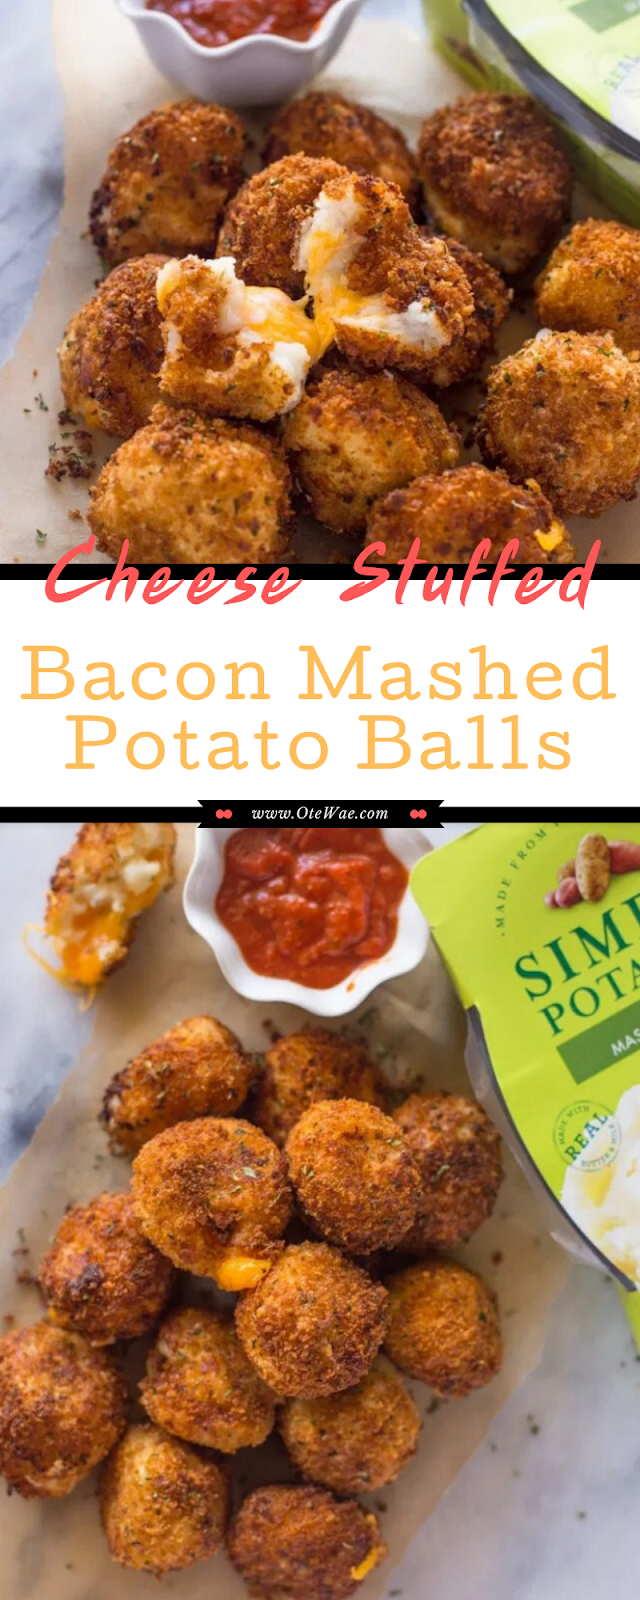 Cheese Stuffed Bacon Mashed Potato Balls